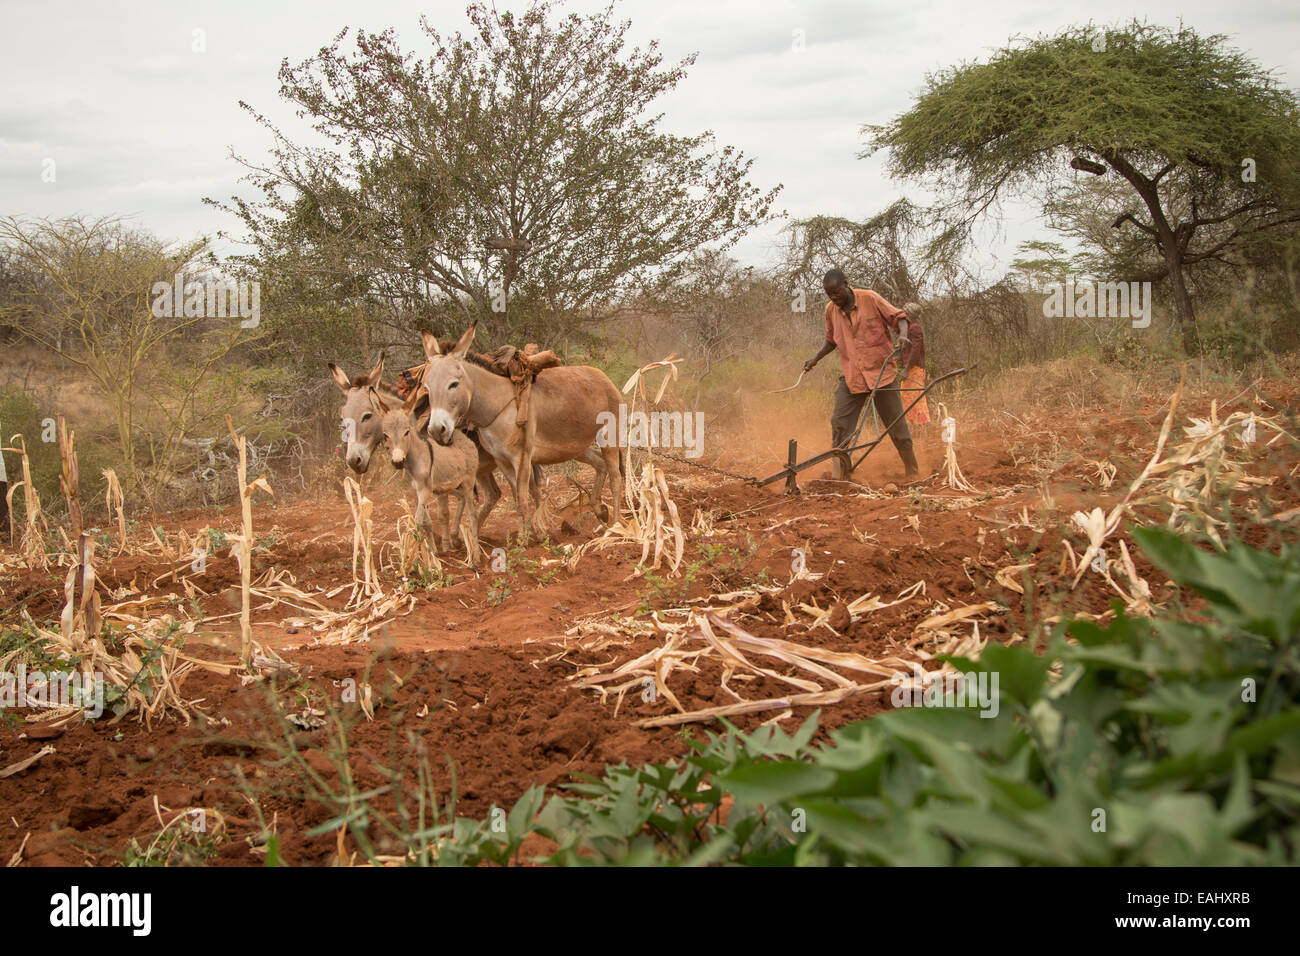 A small farmer uses donkeys to plow his field in Makueni County, Kenya, East Africa. - Stock Image